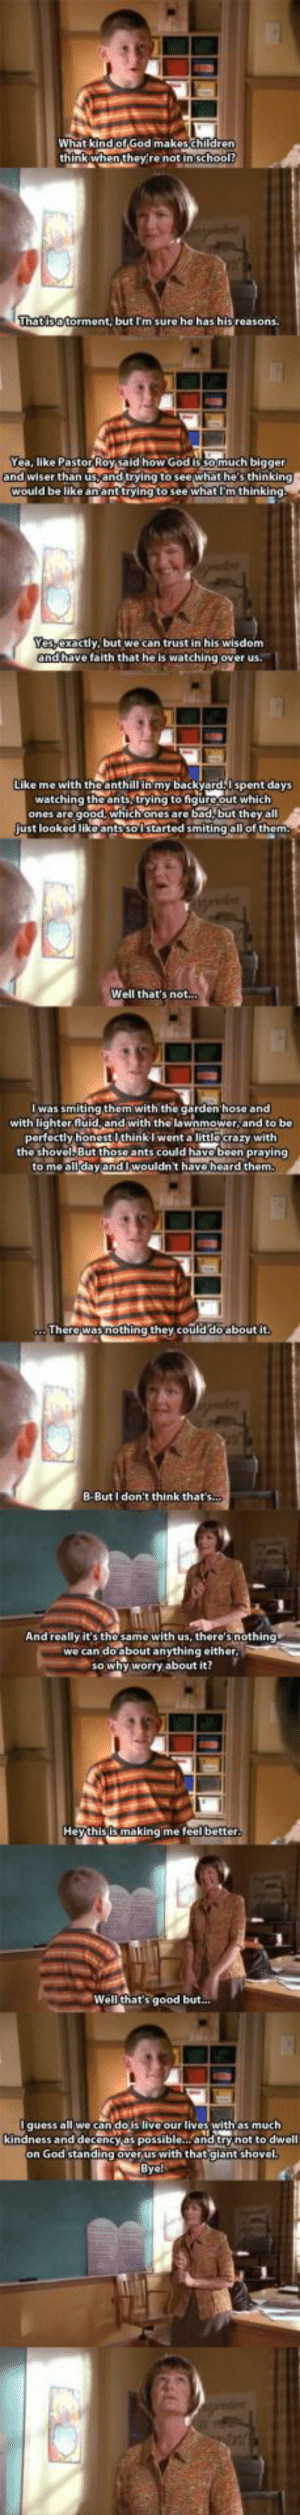 Perspective, brought to you by Malcolm on the Middle.: What kind of God makeschildren)  think when they're not ingchool?  Thatisatorment, but Im sure he has his reasons.  Yea, like Pastor Roy said how God is so much bigger  and wiser than usand trying to see what he's thinking9  would be like ananttrying to see what I'm thinking,  Yes exactly, but we can trust in his wisdom  andbave faith that he is watching over us.  Like me with the anthill in my backyard.l spent days  watching the ants, trying to figure.out which  ones are good, which ones are bad, but they all  Just looked likoantssolstarted smitingallof them.  Well that's not..  I was smiting them with the garden hose and  with lighter fluid, and with the lawnmower and to be  perfectly honestI think I went a little crazy with  the shovel But those ants could havebeen praying  to me all dayandlwouldn't have heard them.  Therewasnothing they.could doabout it.  B-But I don't think that's.  And really it's the same with us, there'snothing  we can do about anything either  so why worry about it?  Hey thisismaking me feelbetter.  Well that's good but...  Iguess all we can do is live our lives with as much  kindness and decencyas possible... and try not to dwell  on God standing over us with that giant shovel.  Bye Perspective, brought to you by Malcolm on the Middle.